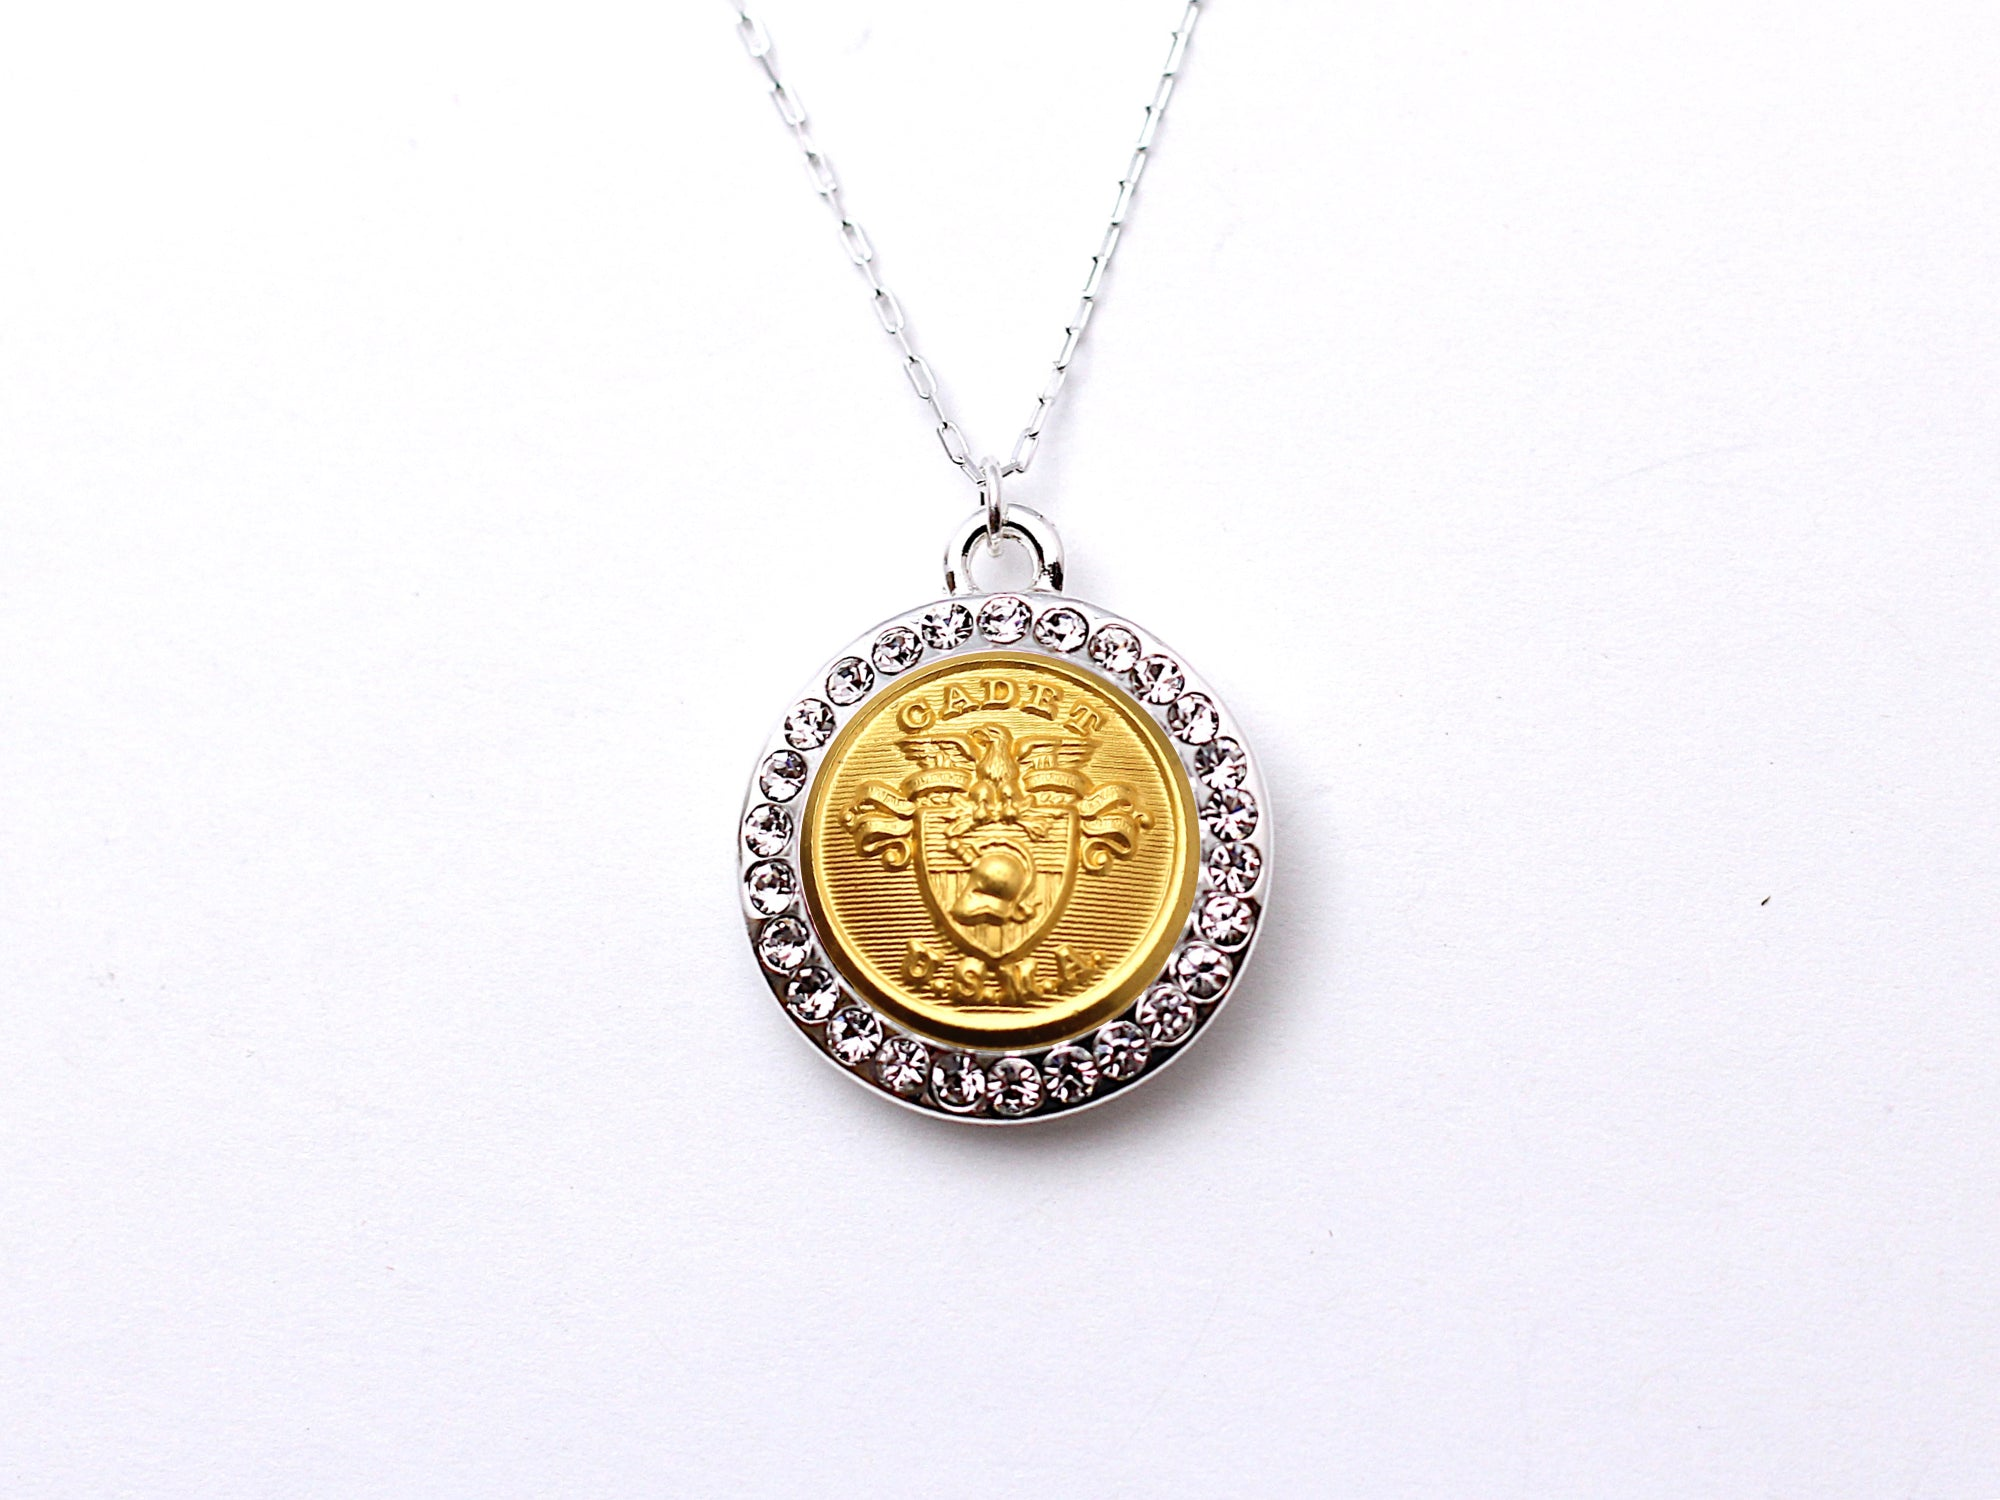 USMA Button Necklace - Small Rhinestone Silver Pendant